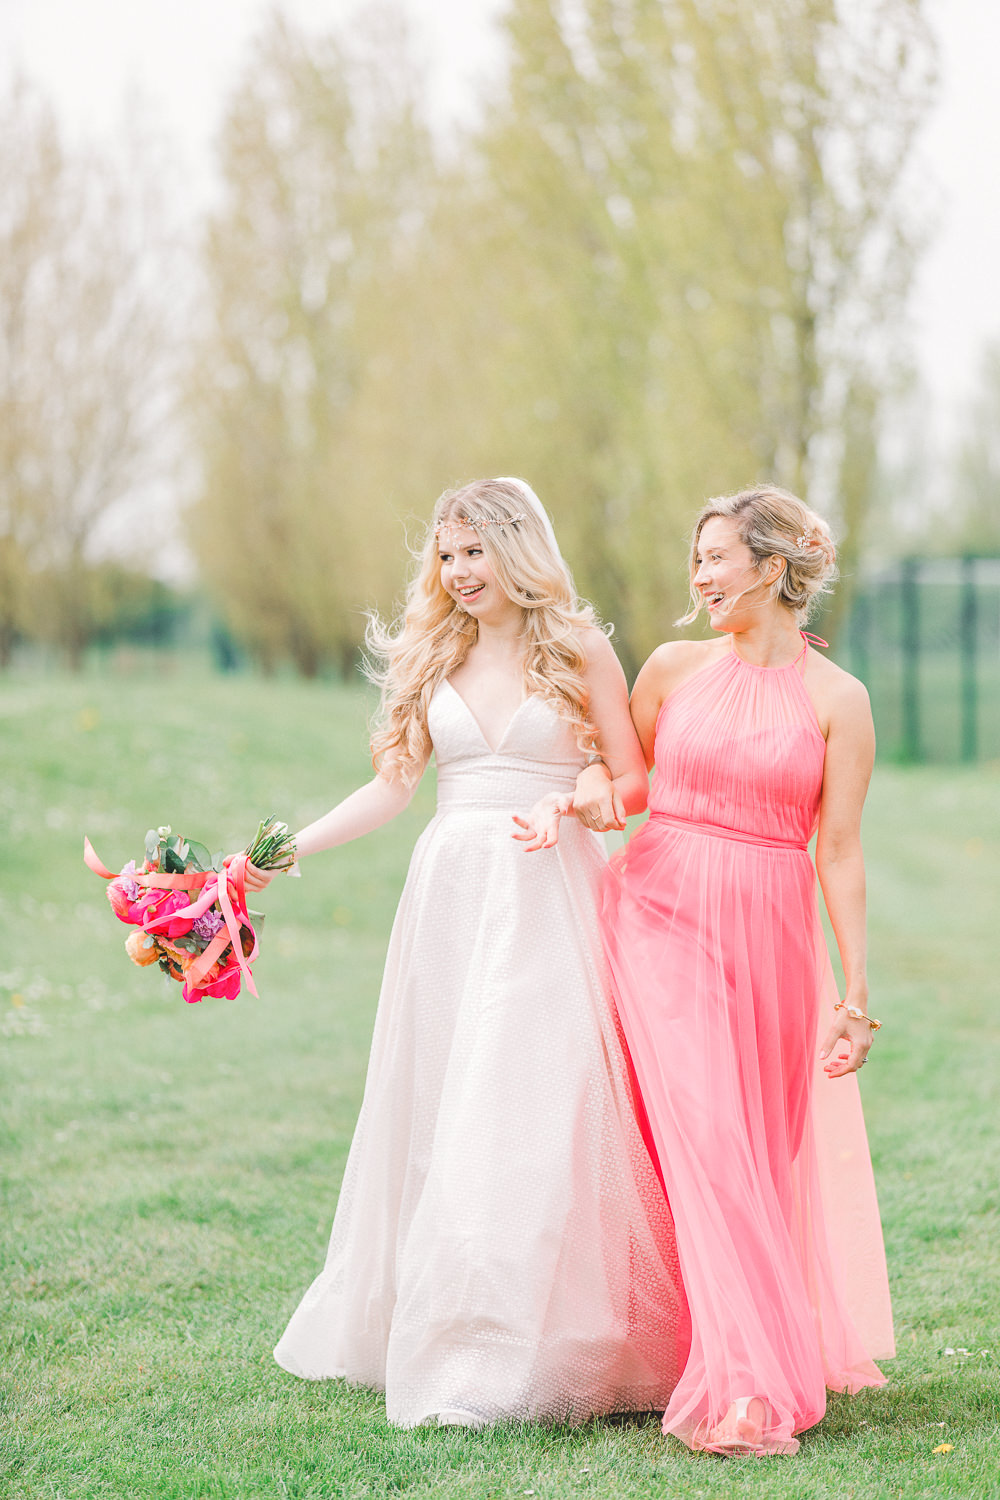 Bridesmaid Bridesmaids Dress Dresses Coral Peach Wedding Ideas Courtney Dee Photography